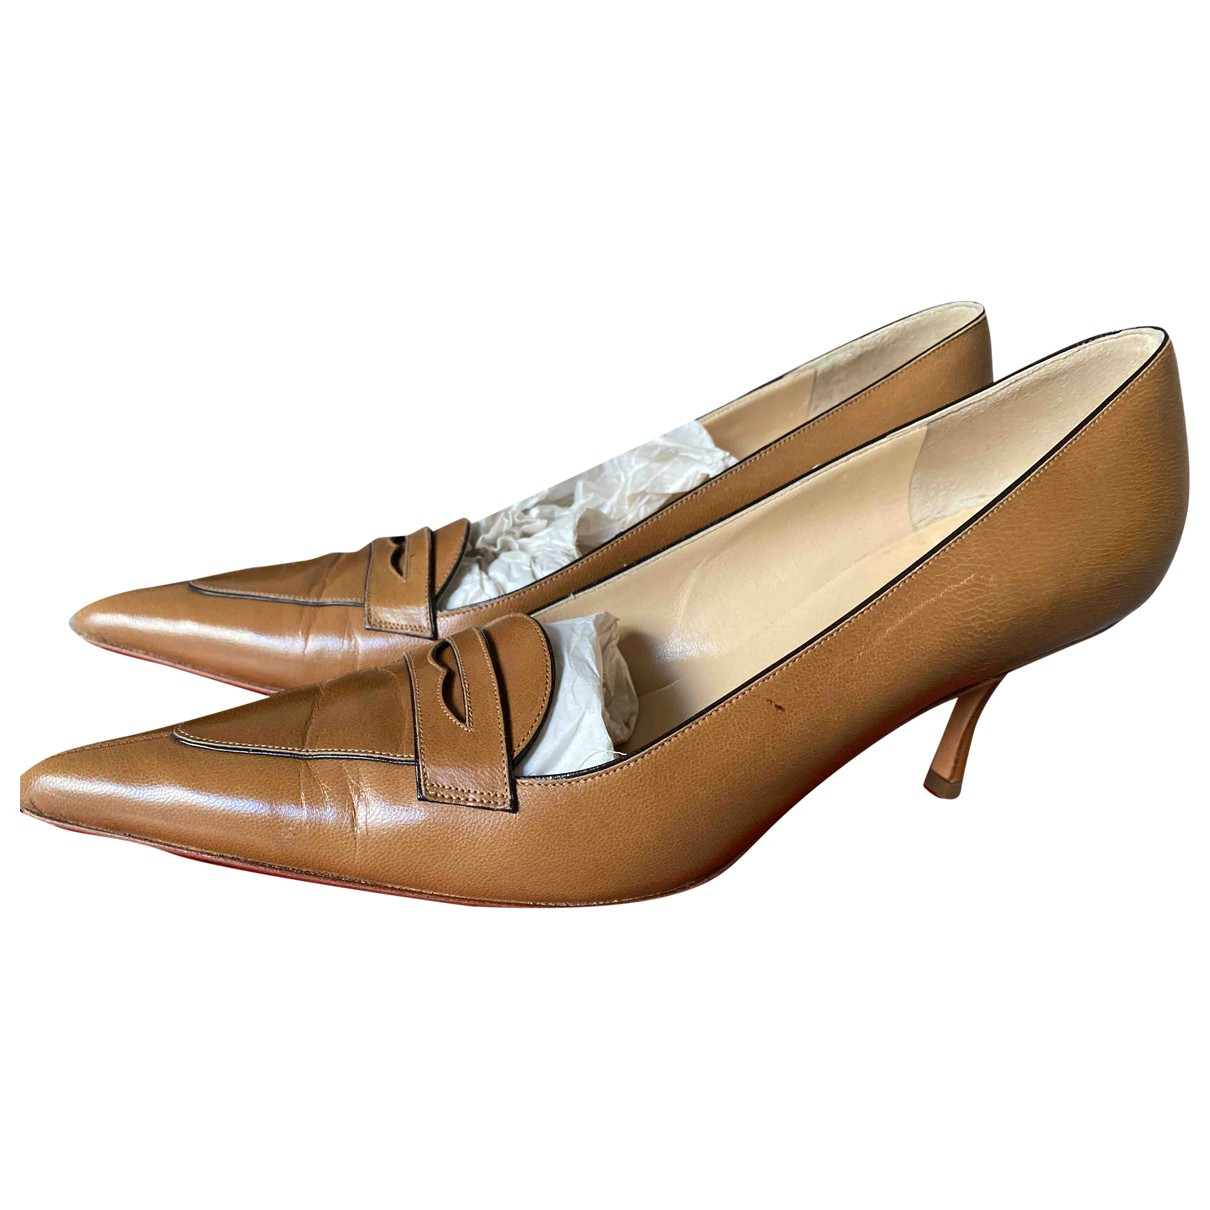 Valentino Garavani N Camel Leather Heels for Women 38 EU